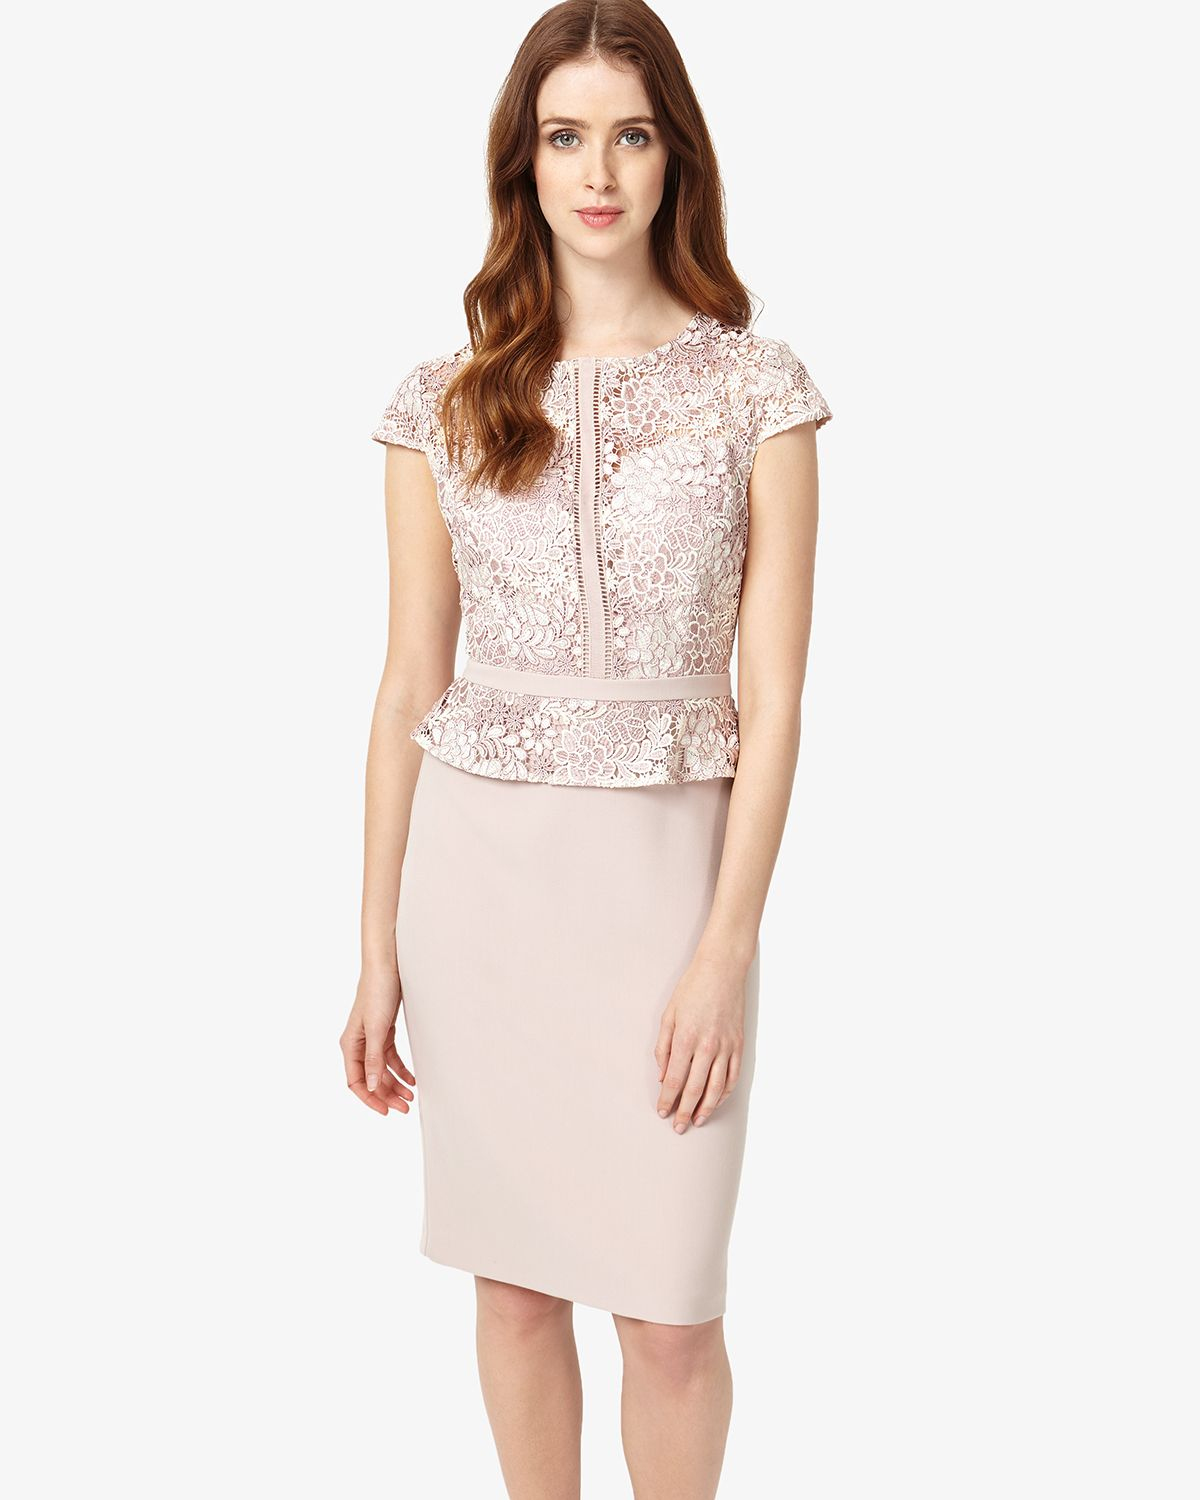 This chic occasion dress features a lace overlay on the bodice that ...